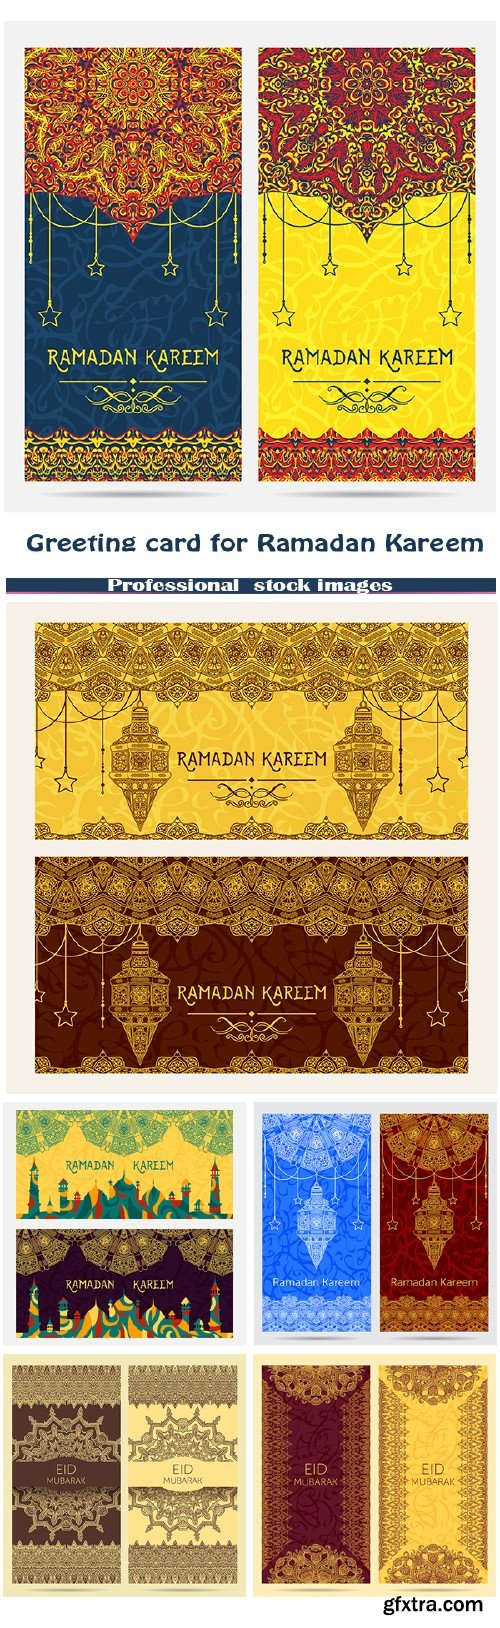 Beautiful greeting card for Ramadan Kareem